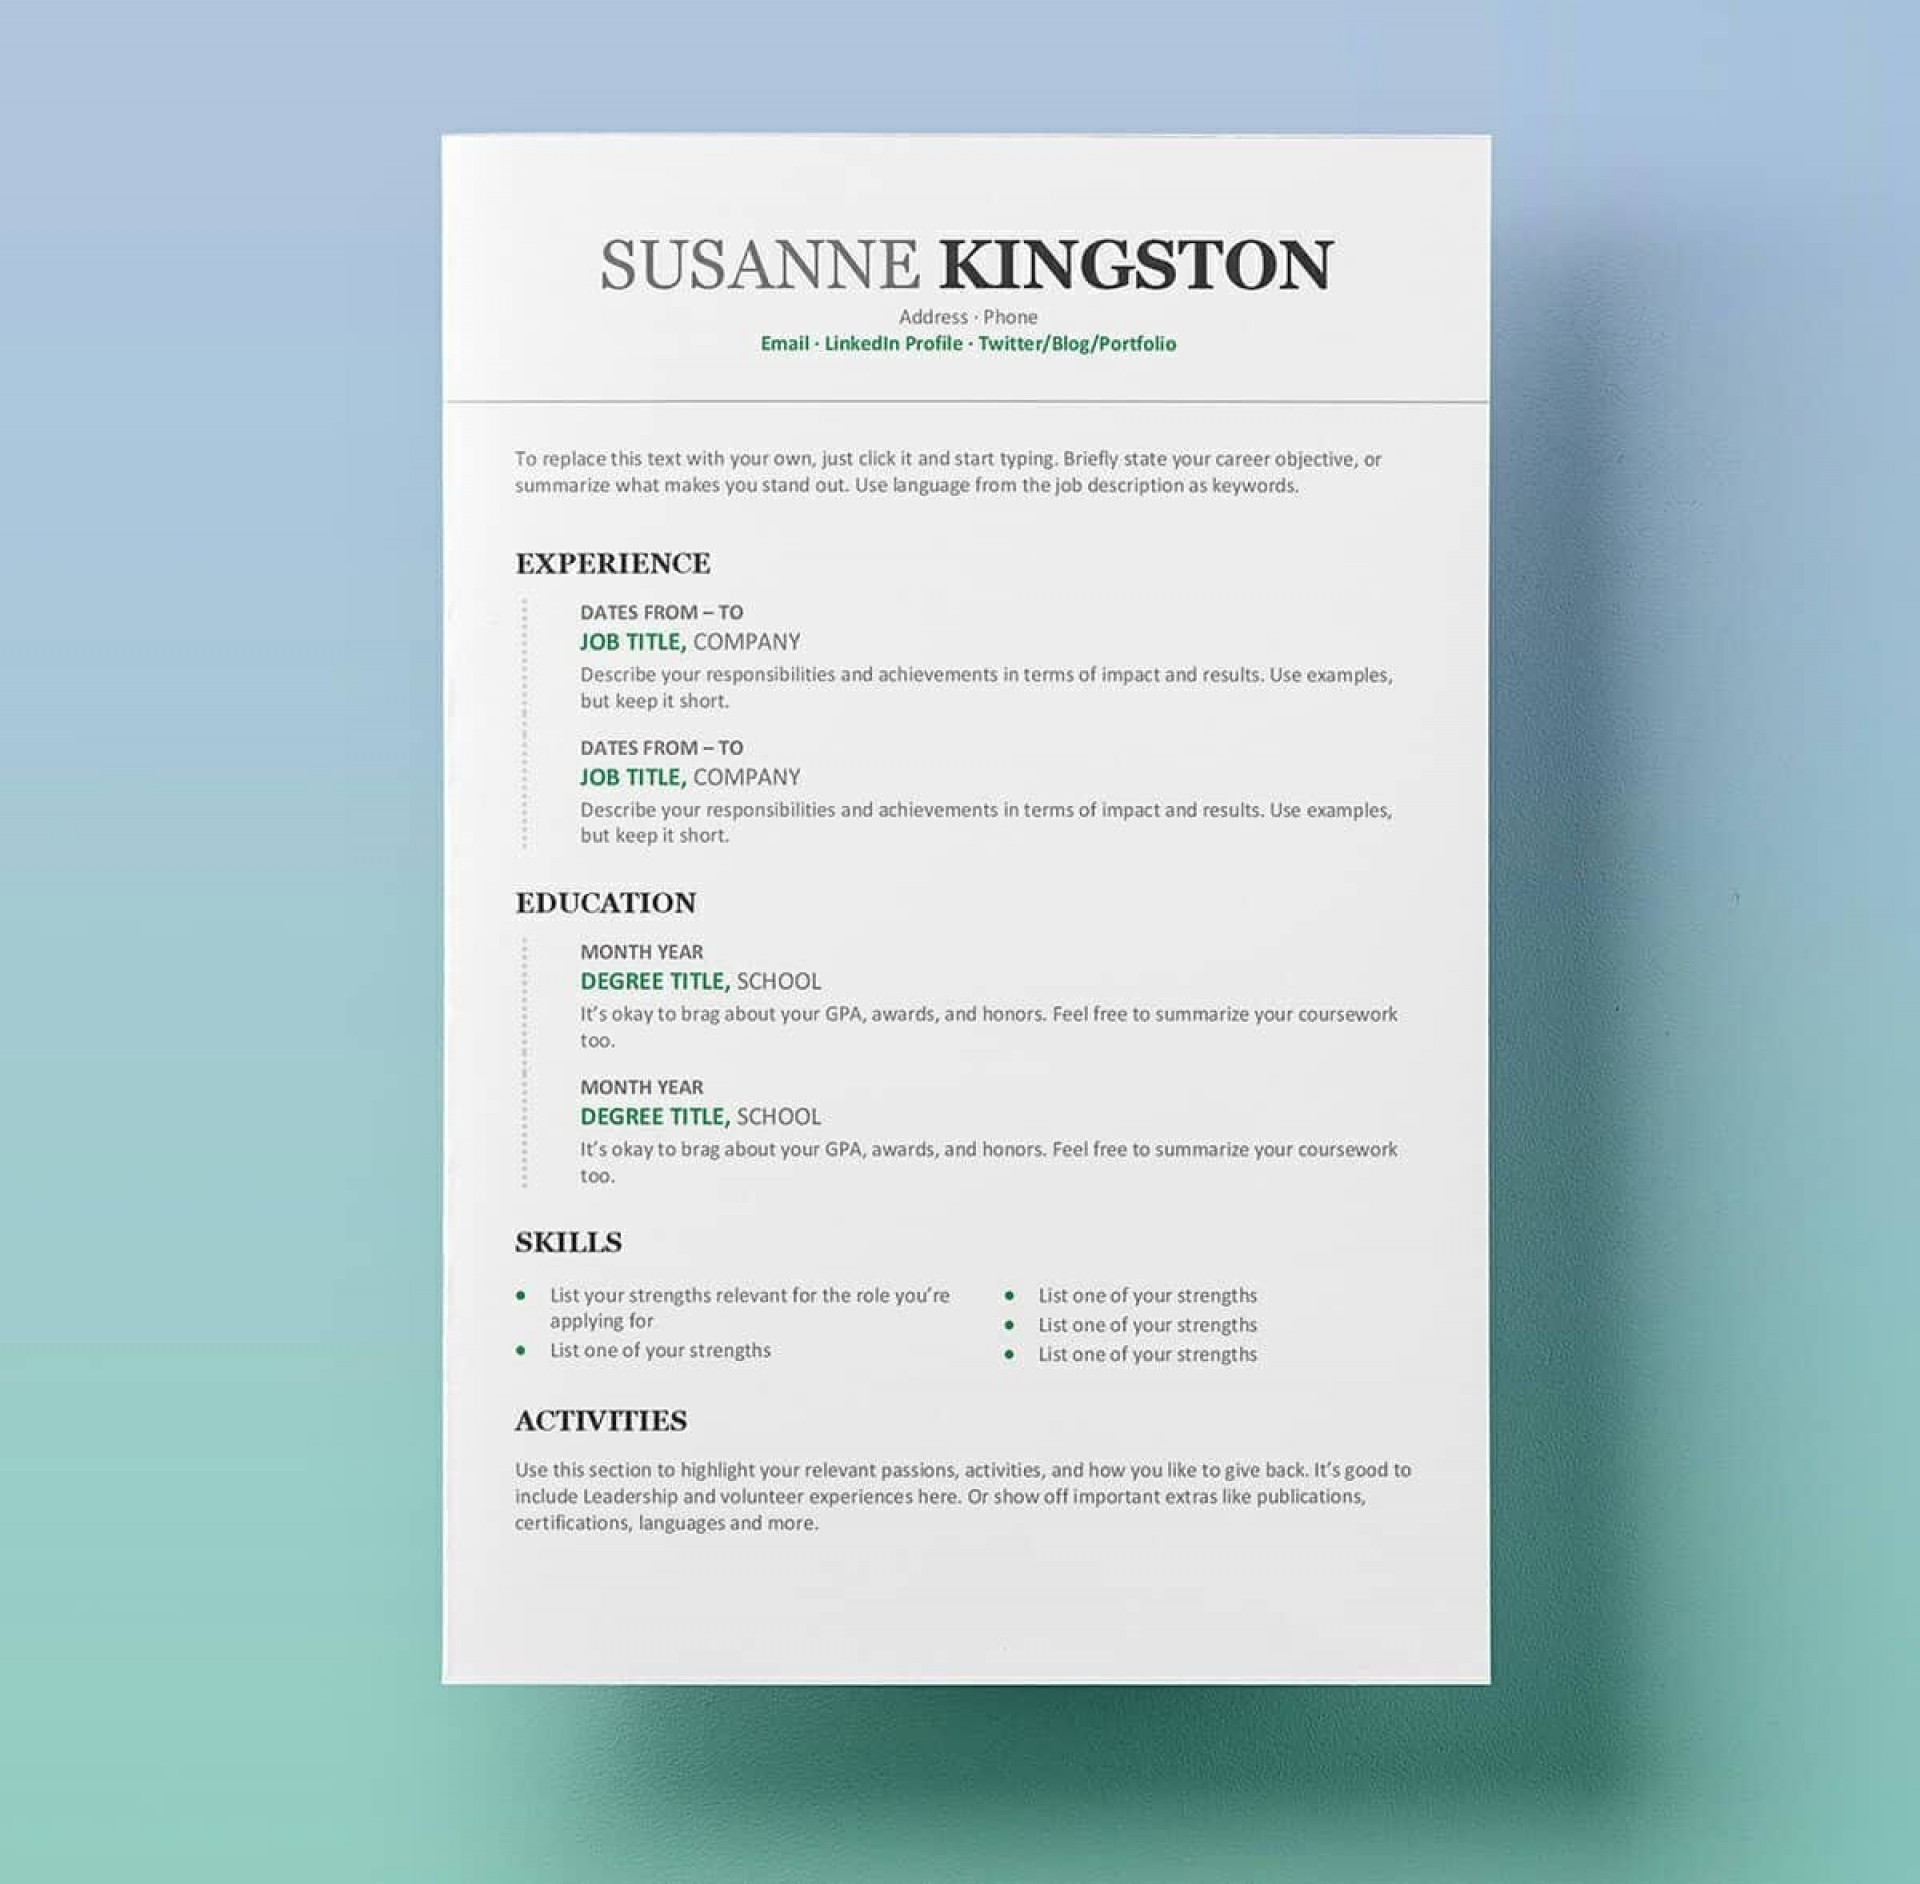 009 Unusual Professional Resume Template Free Download Word Idea  Cv 2020 Format With Photo1920